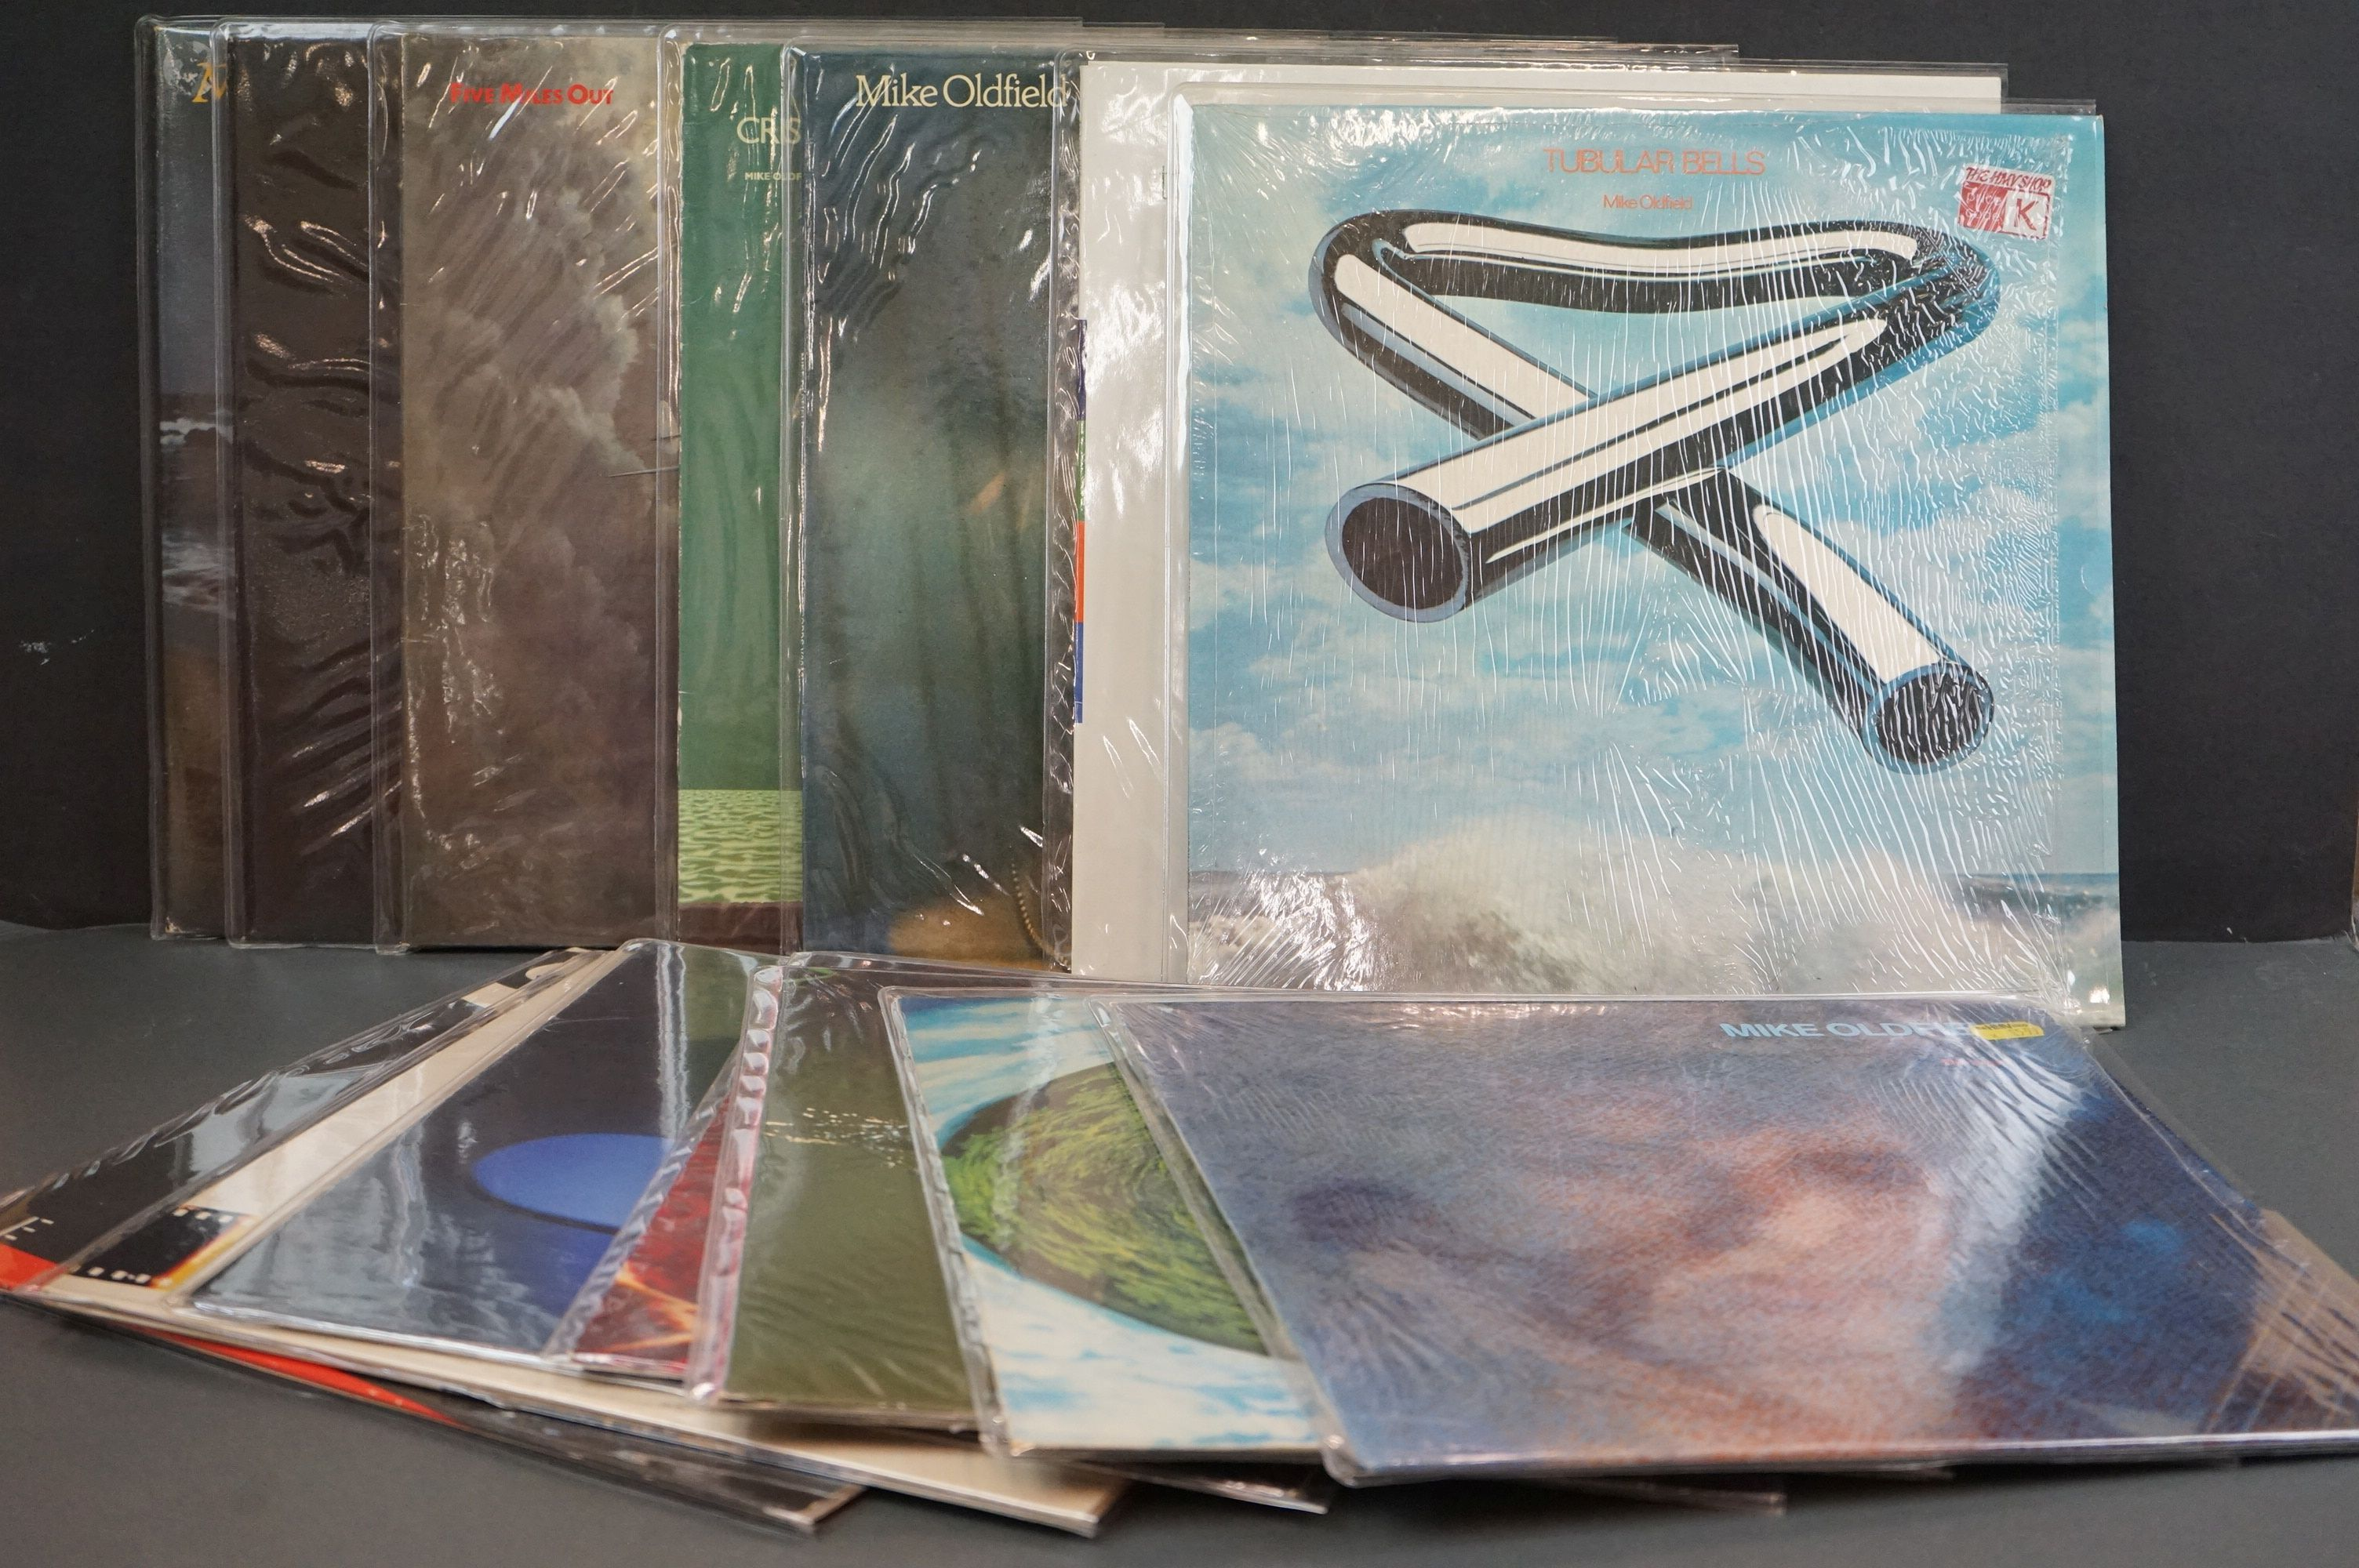 Vinyl - 14 Mike Oldfield LPs to include Tubular Bells, Five Miles Out, Best Of, Discovery etc,